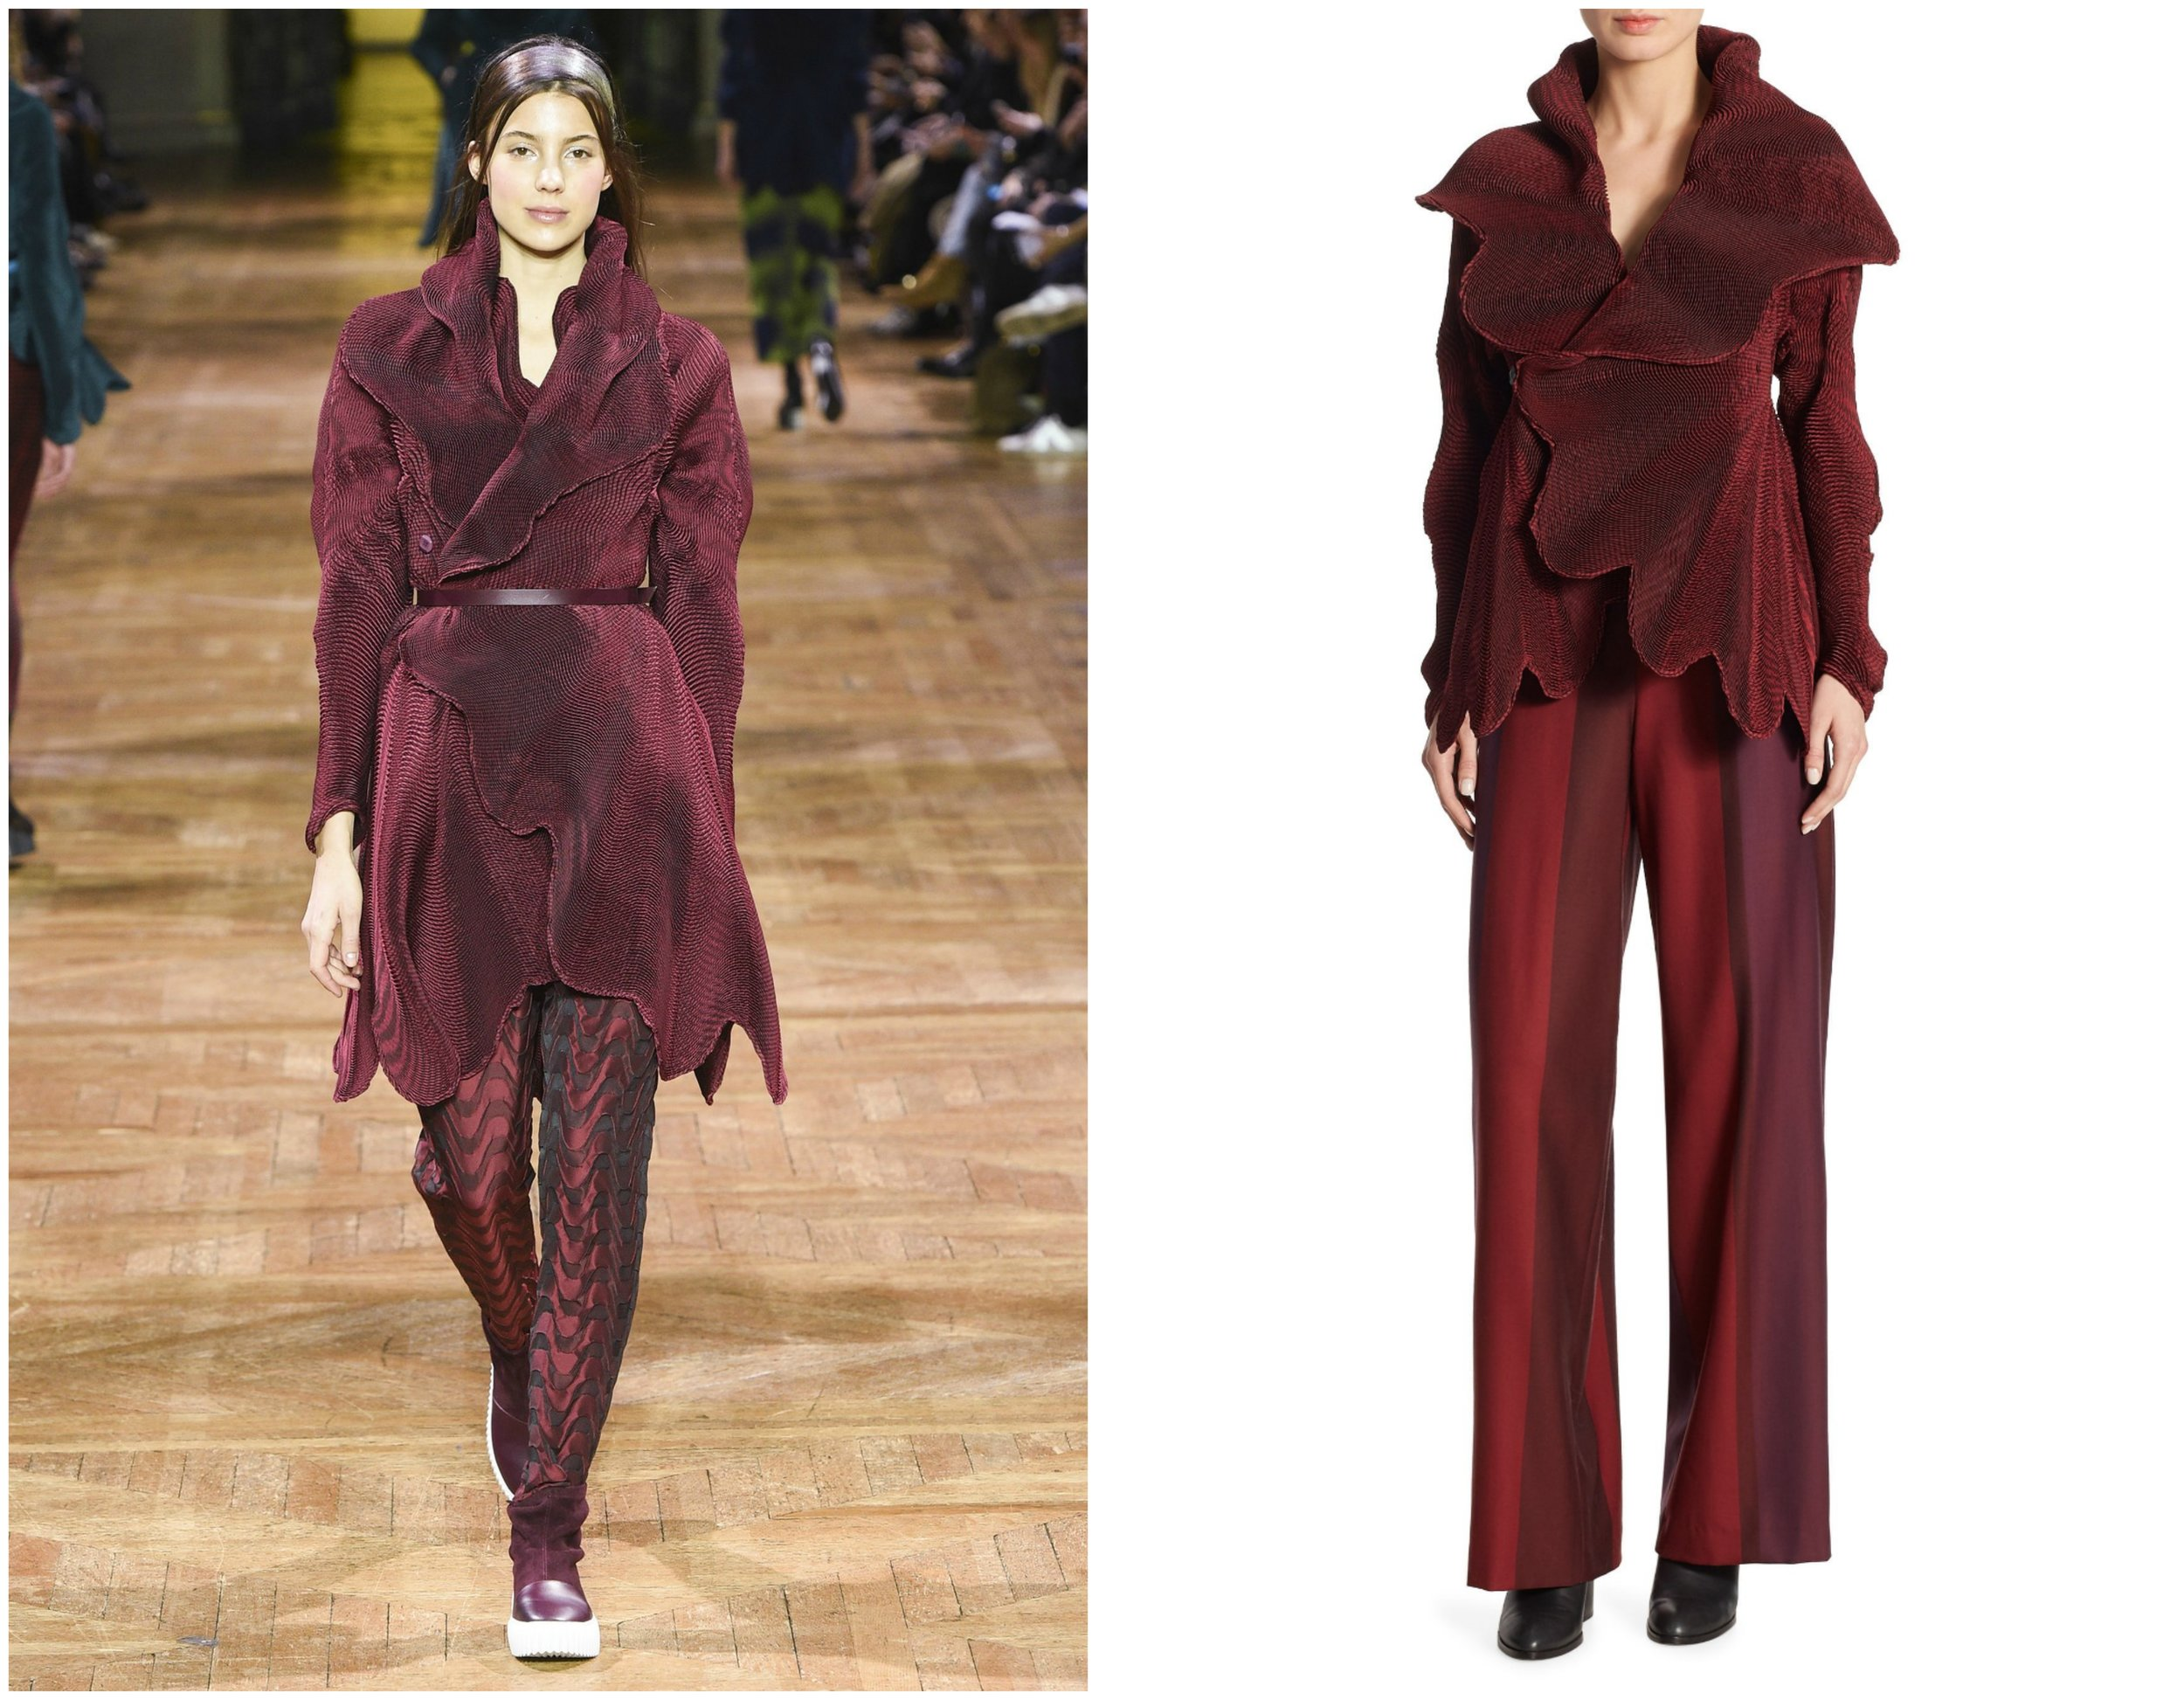 Issey Miyake's designs turn heads on the runway and in the streets. A knee-length version of this  burgundy jacket  was paired with a matching belt during NYFW while a shorter version was released for purchase to the public.